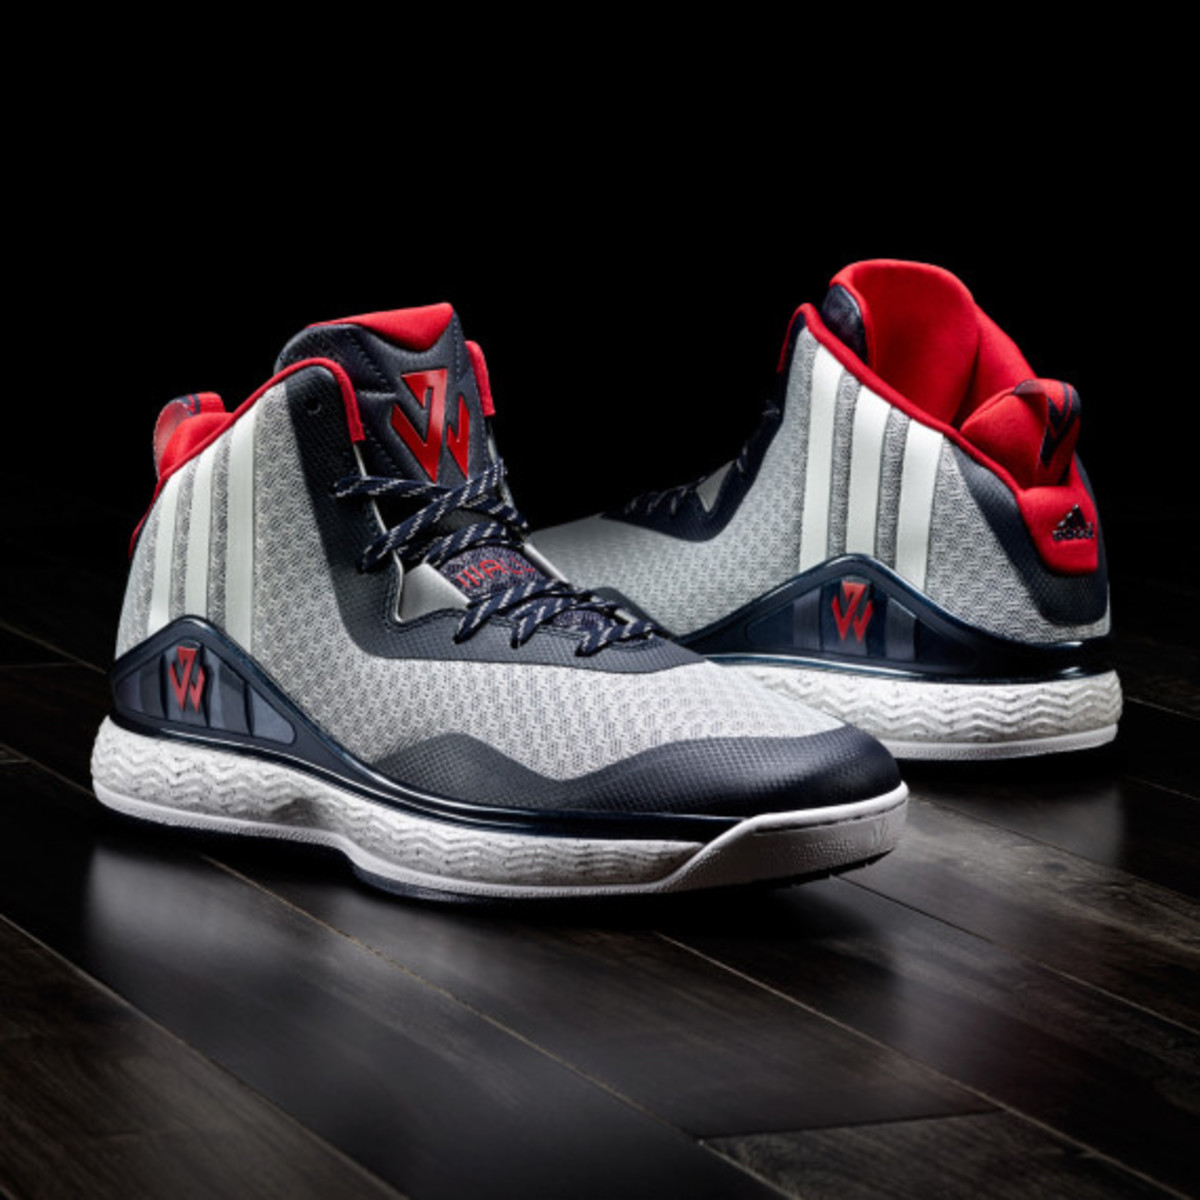 adidas-j-wall-1-signature-basketball-shoe-19